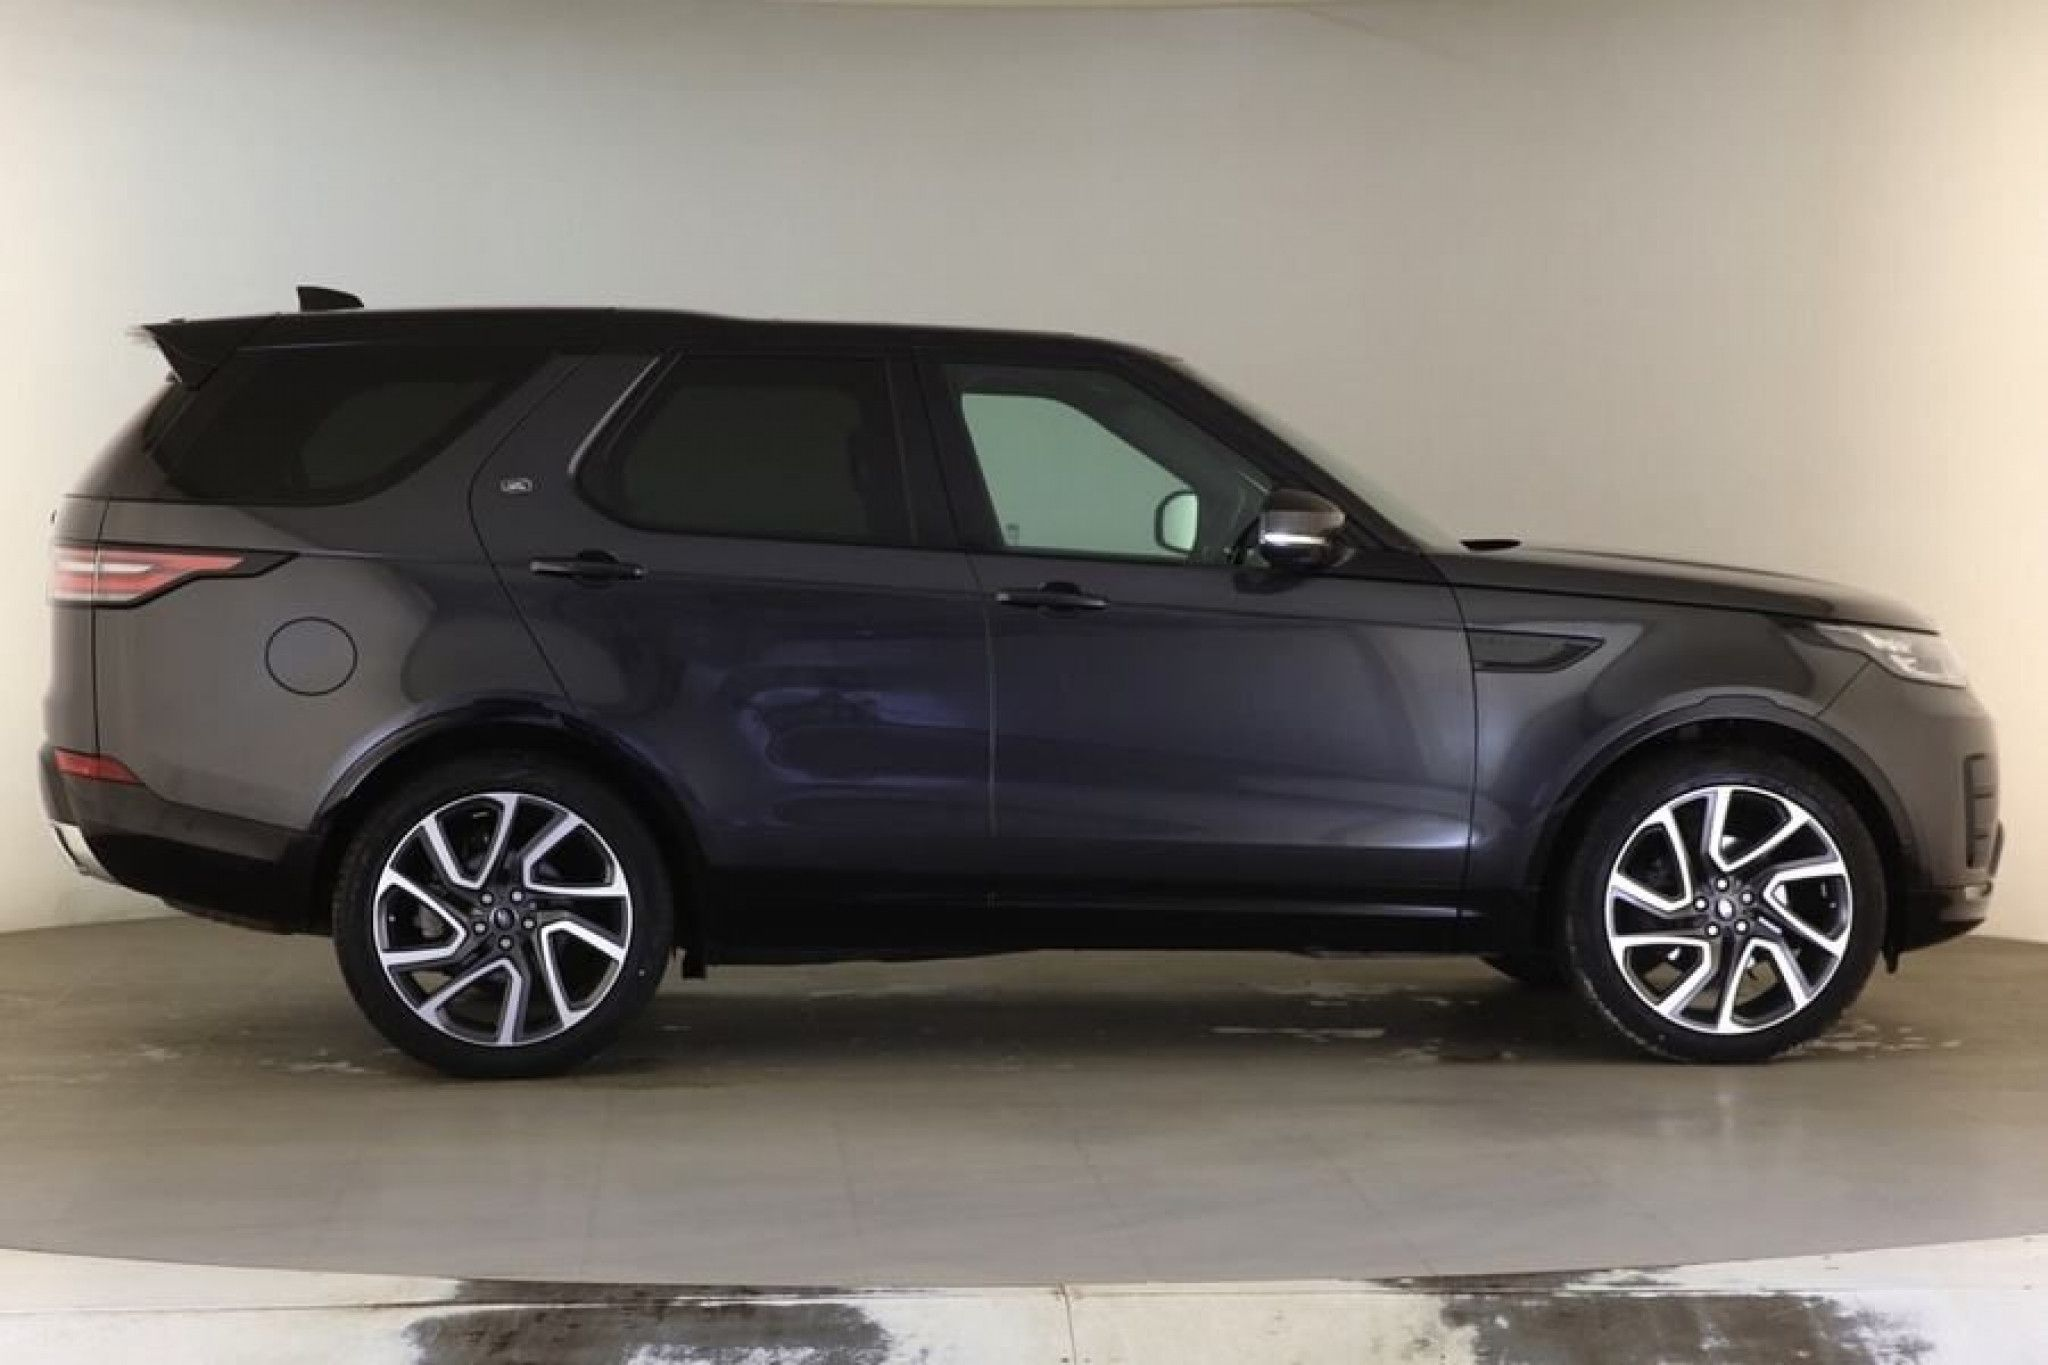 Land Rover Discovery 3 0 Td6 Hse Luxury 5dr Auto For Sale Land Rover Land Rover Discovery Used Land Rover